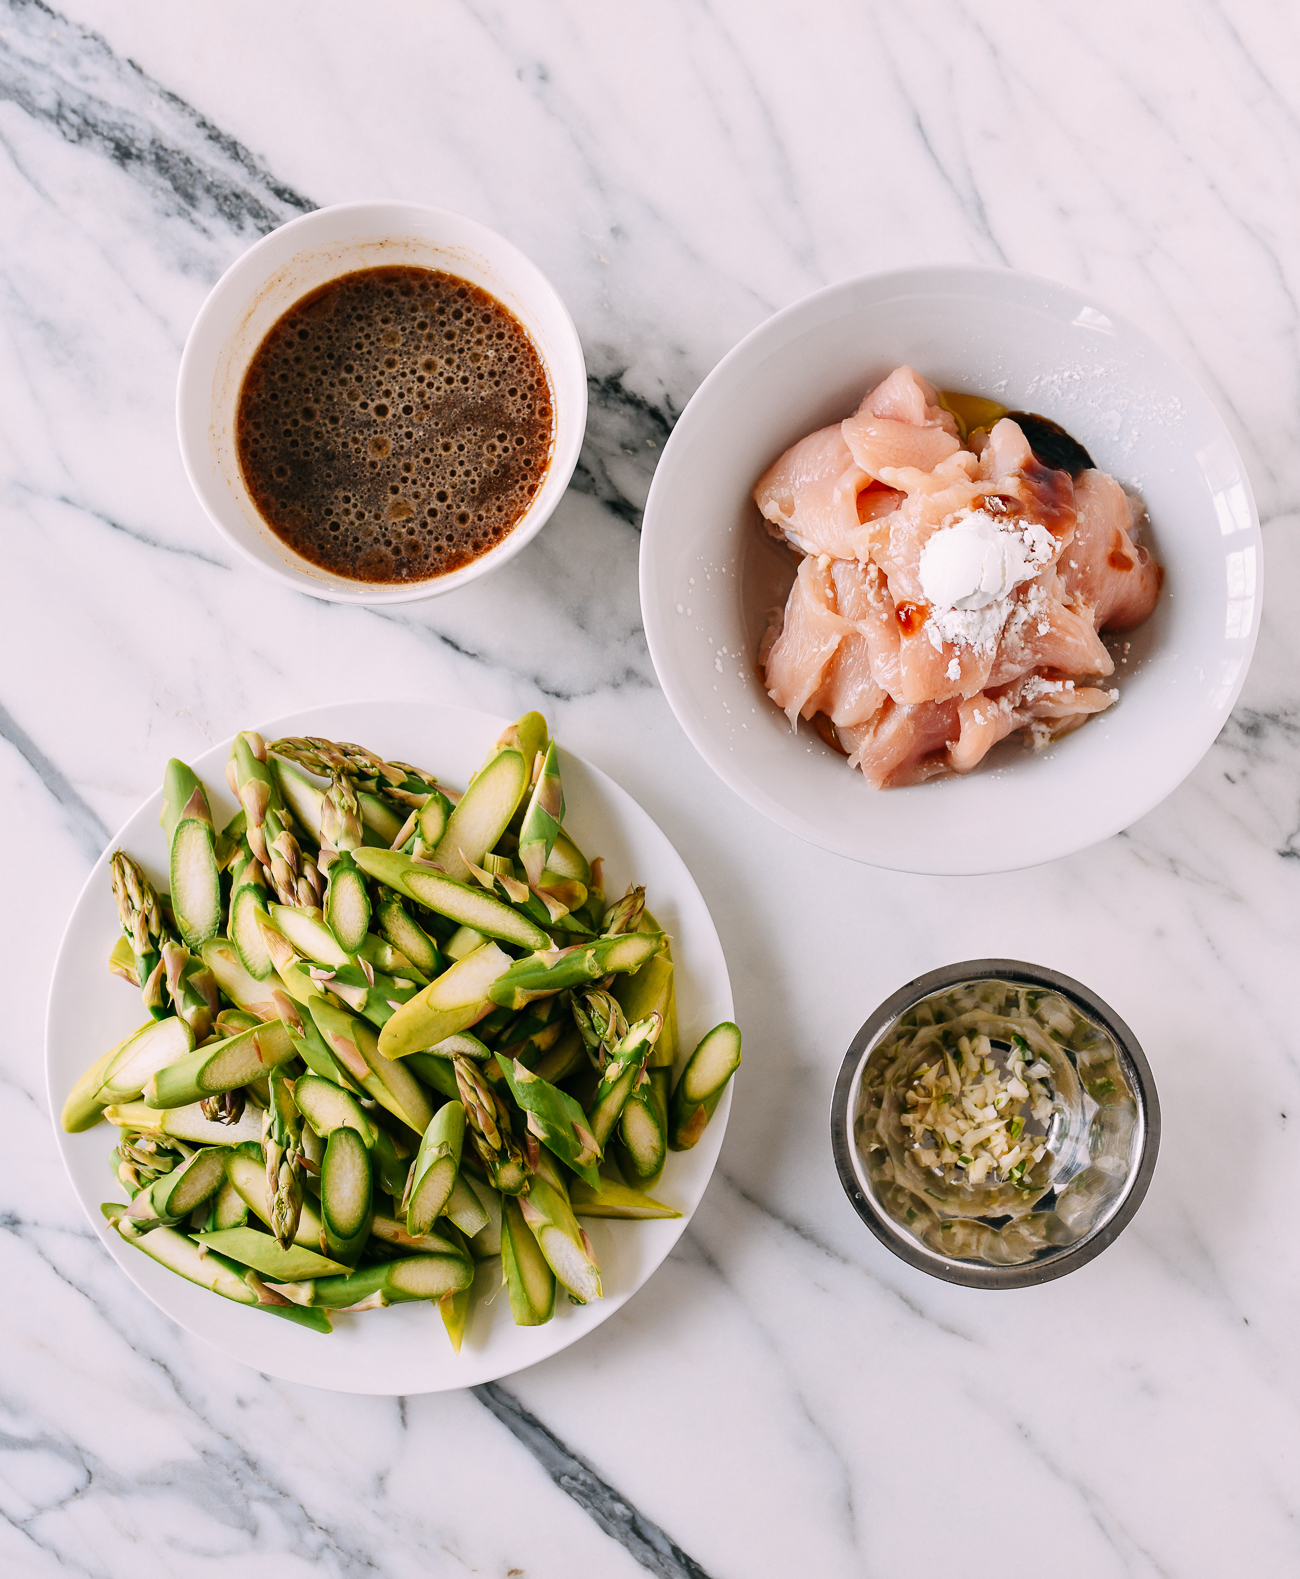 Ingredients for chicken and asparagus stir-fry